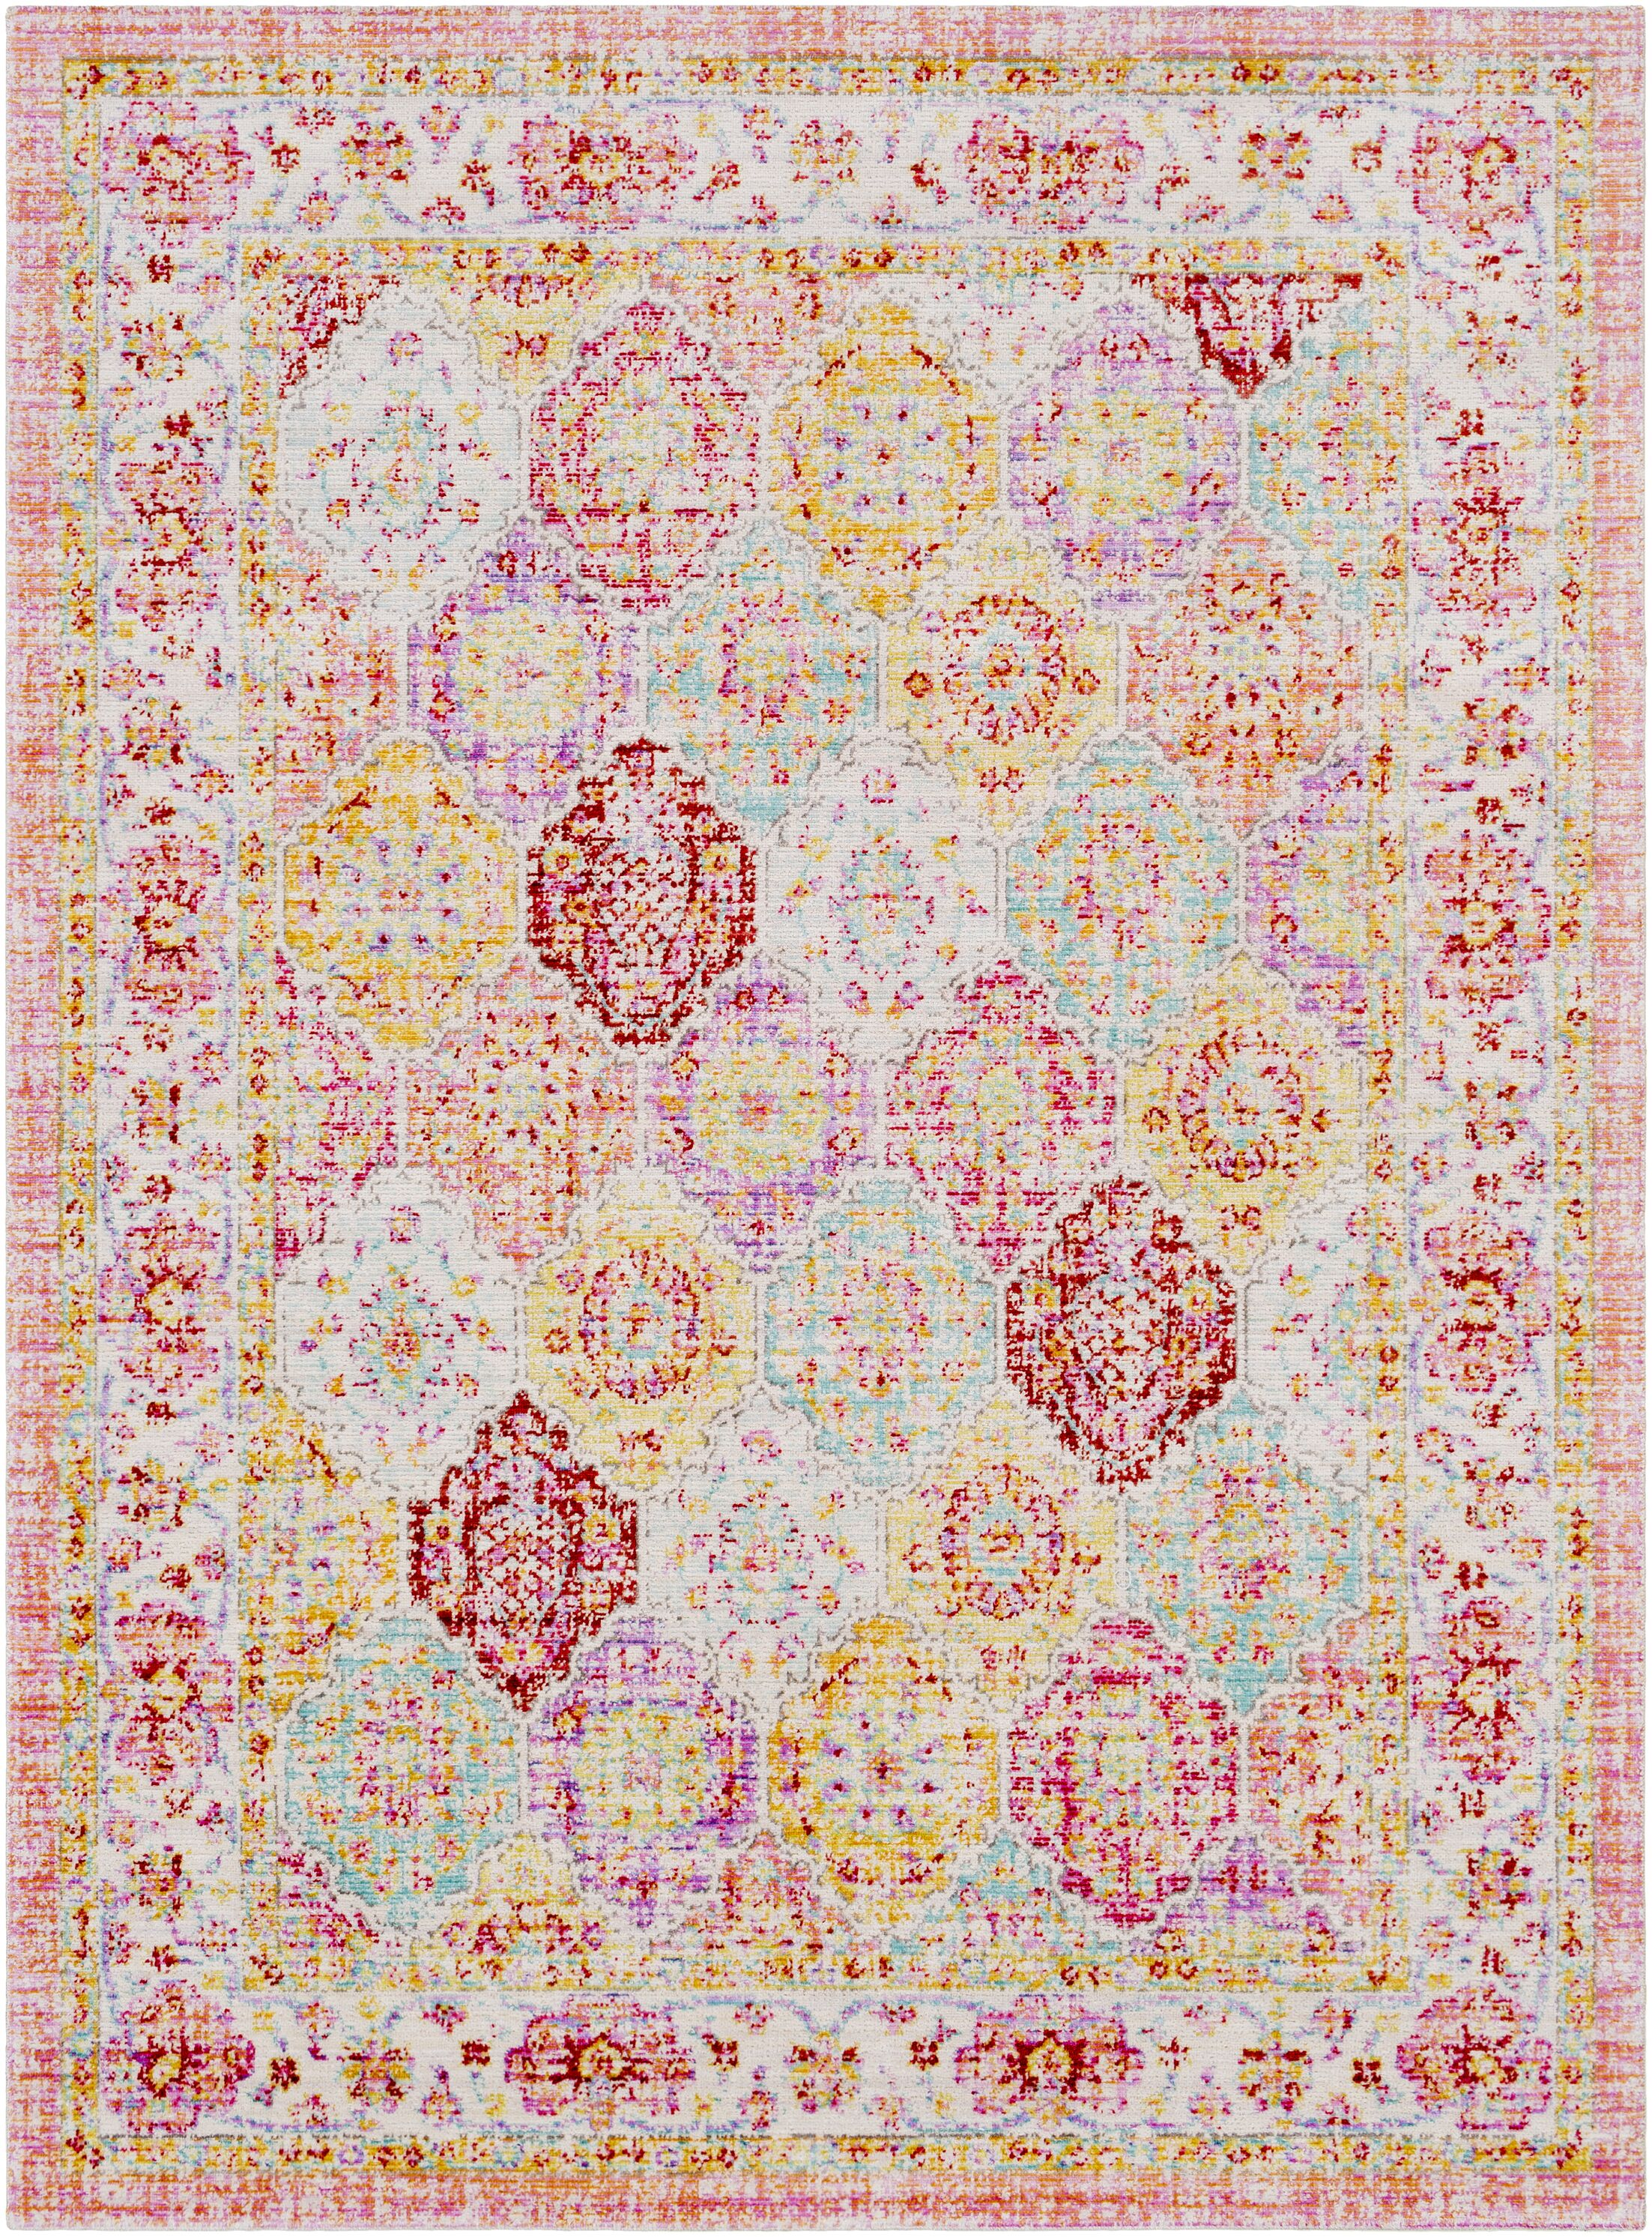 Lyngby-Taarbæk Lilac/Bright Yellow Area Rug Rug Size: Rectangle 7'10